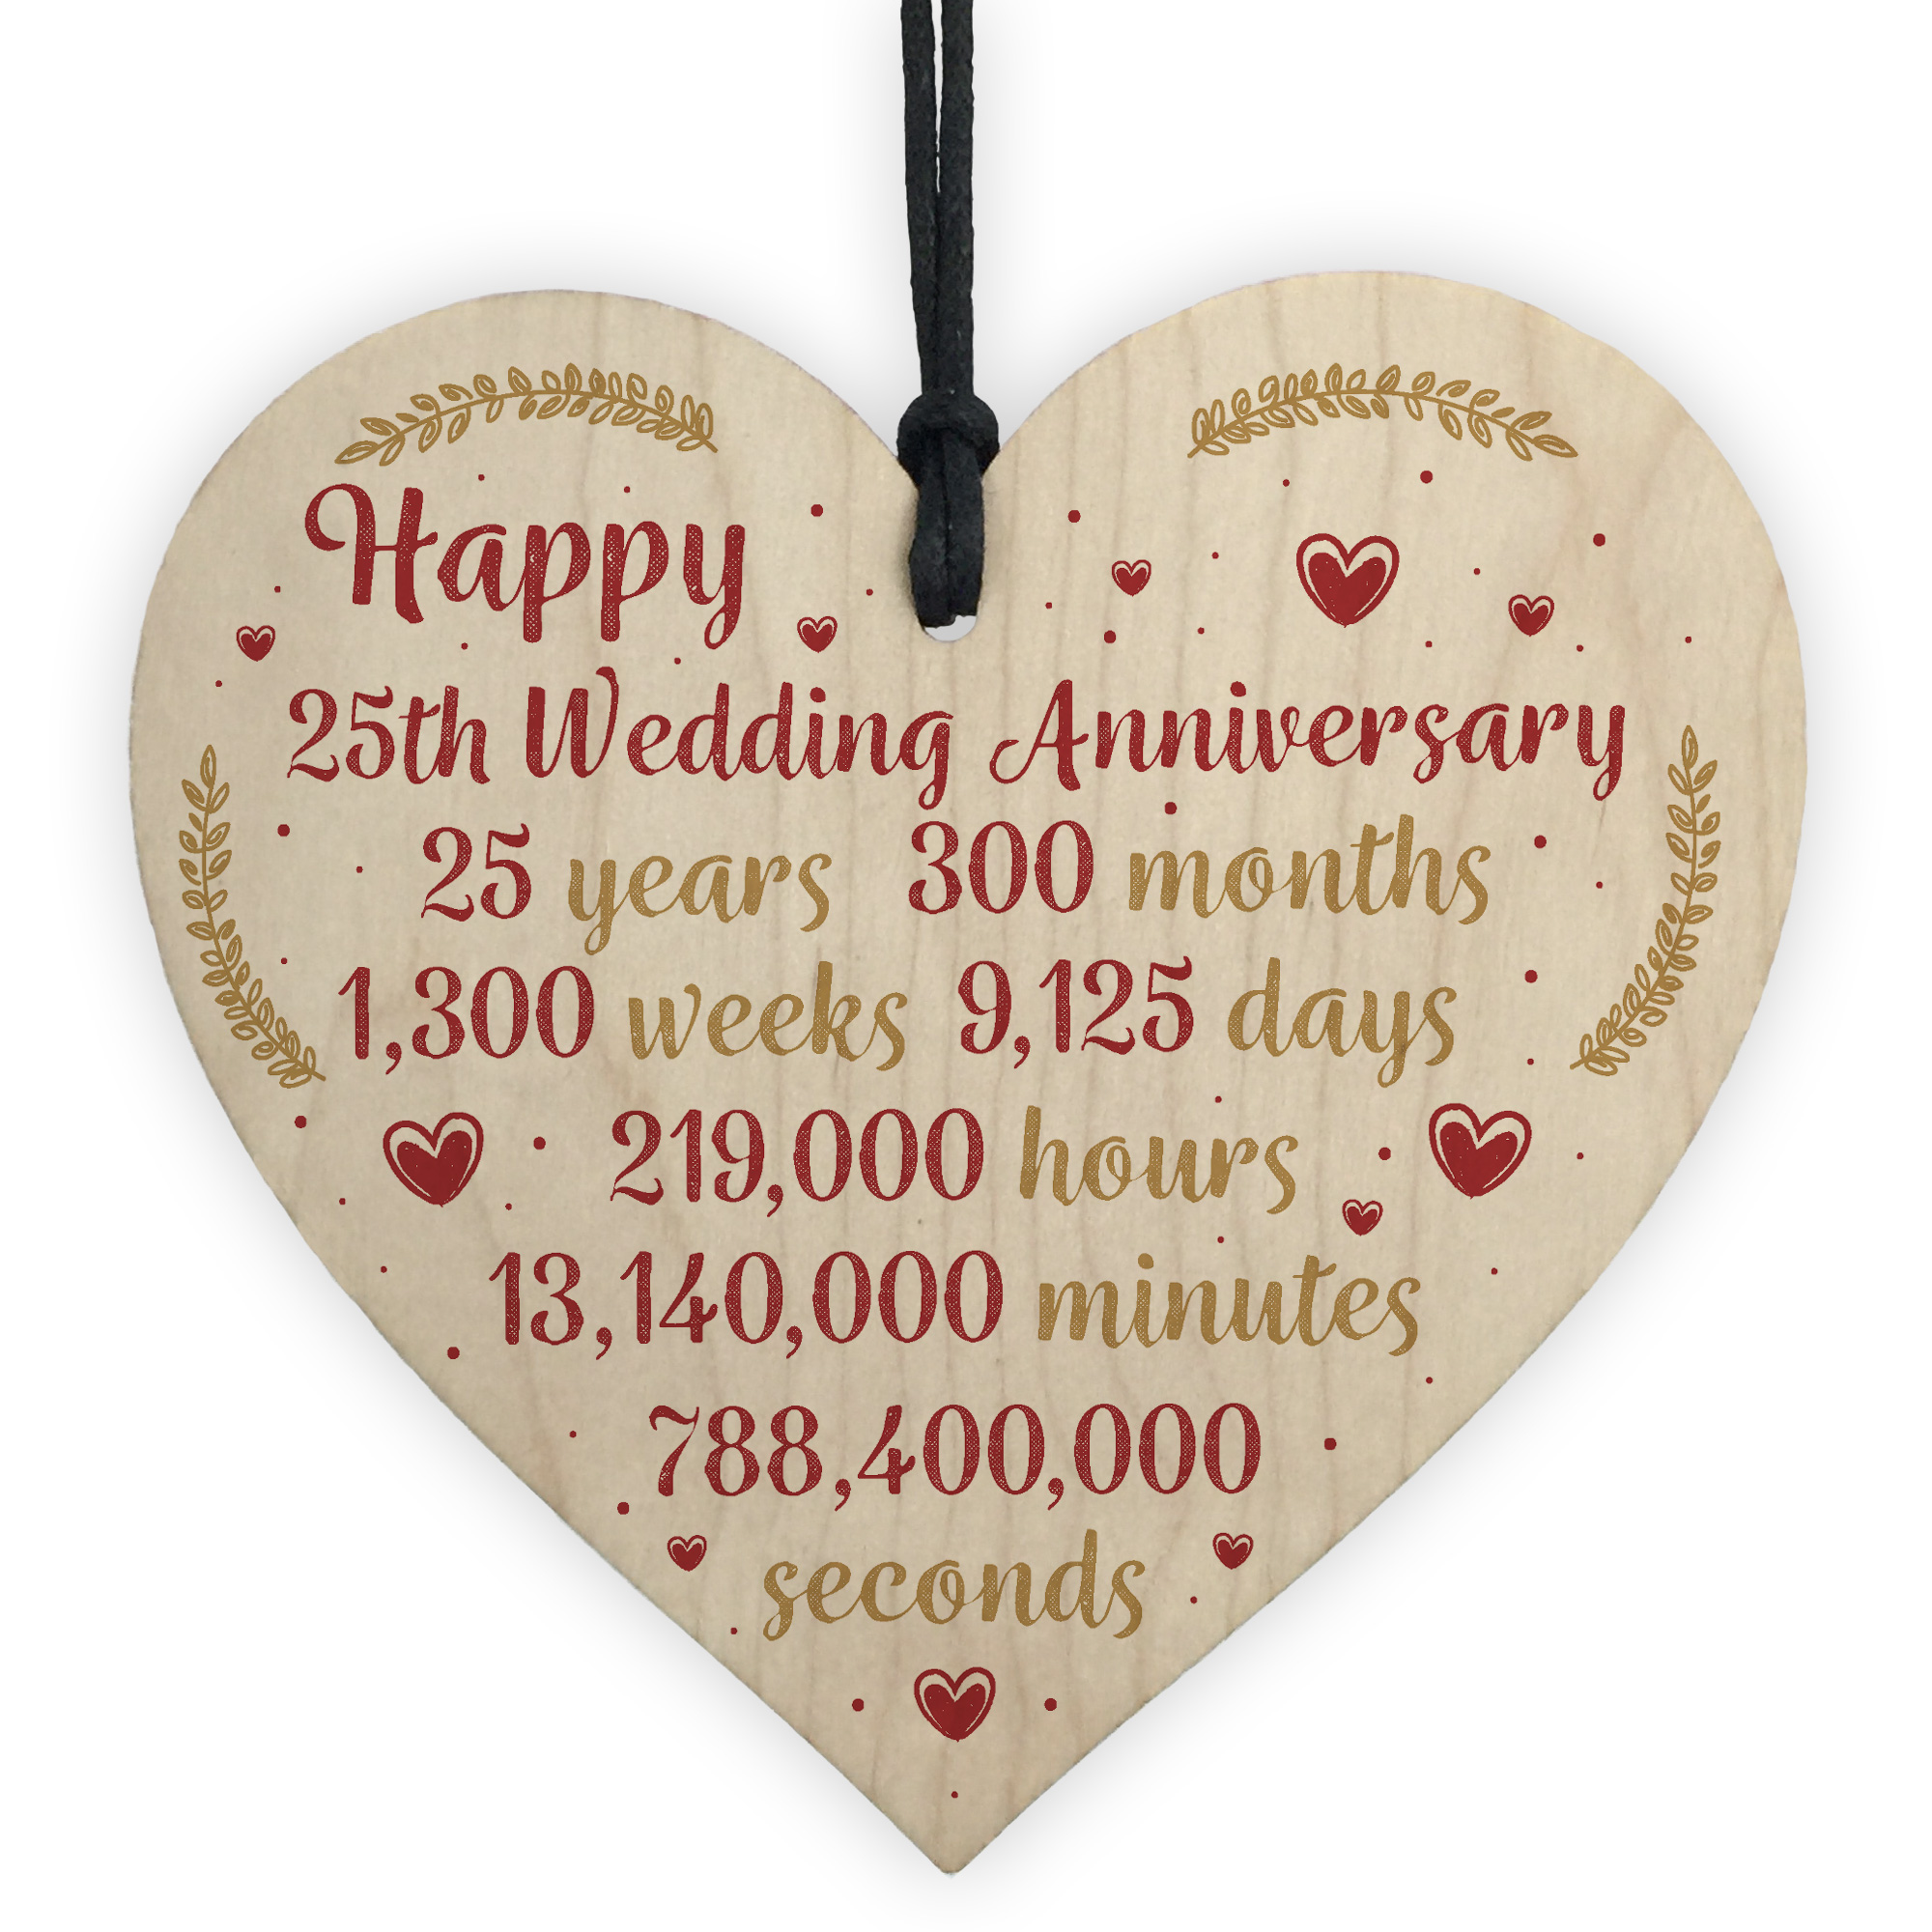 What Is The 25th Wedding Anniversary Gift: Happy 25th Wedding Anniversary Card Gift Heart Twenty Five